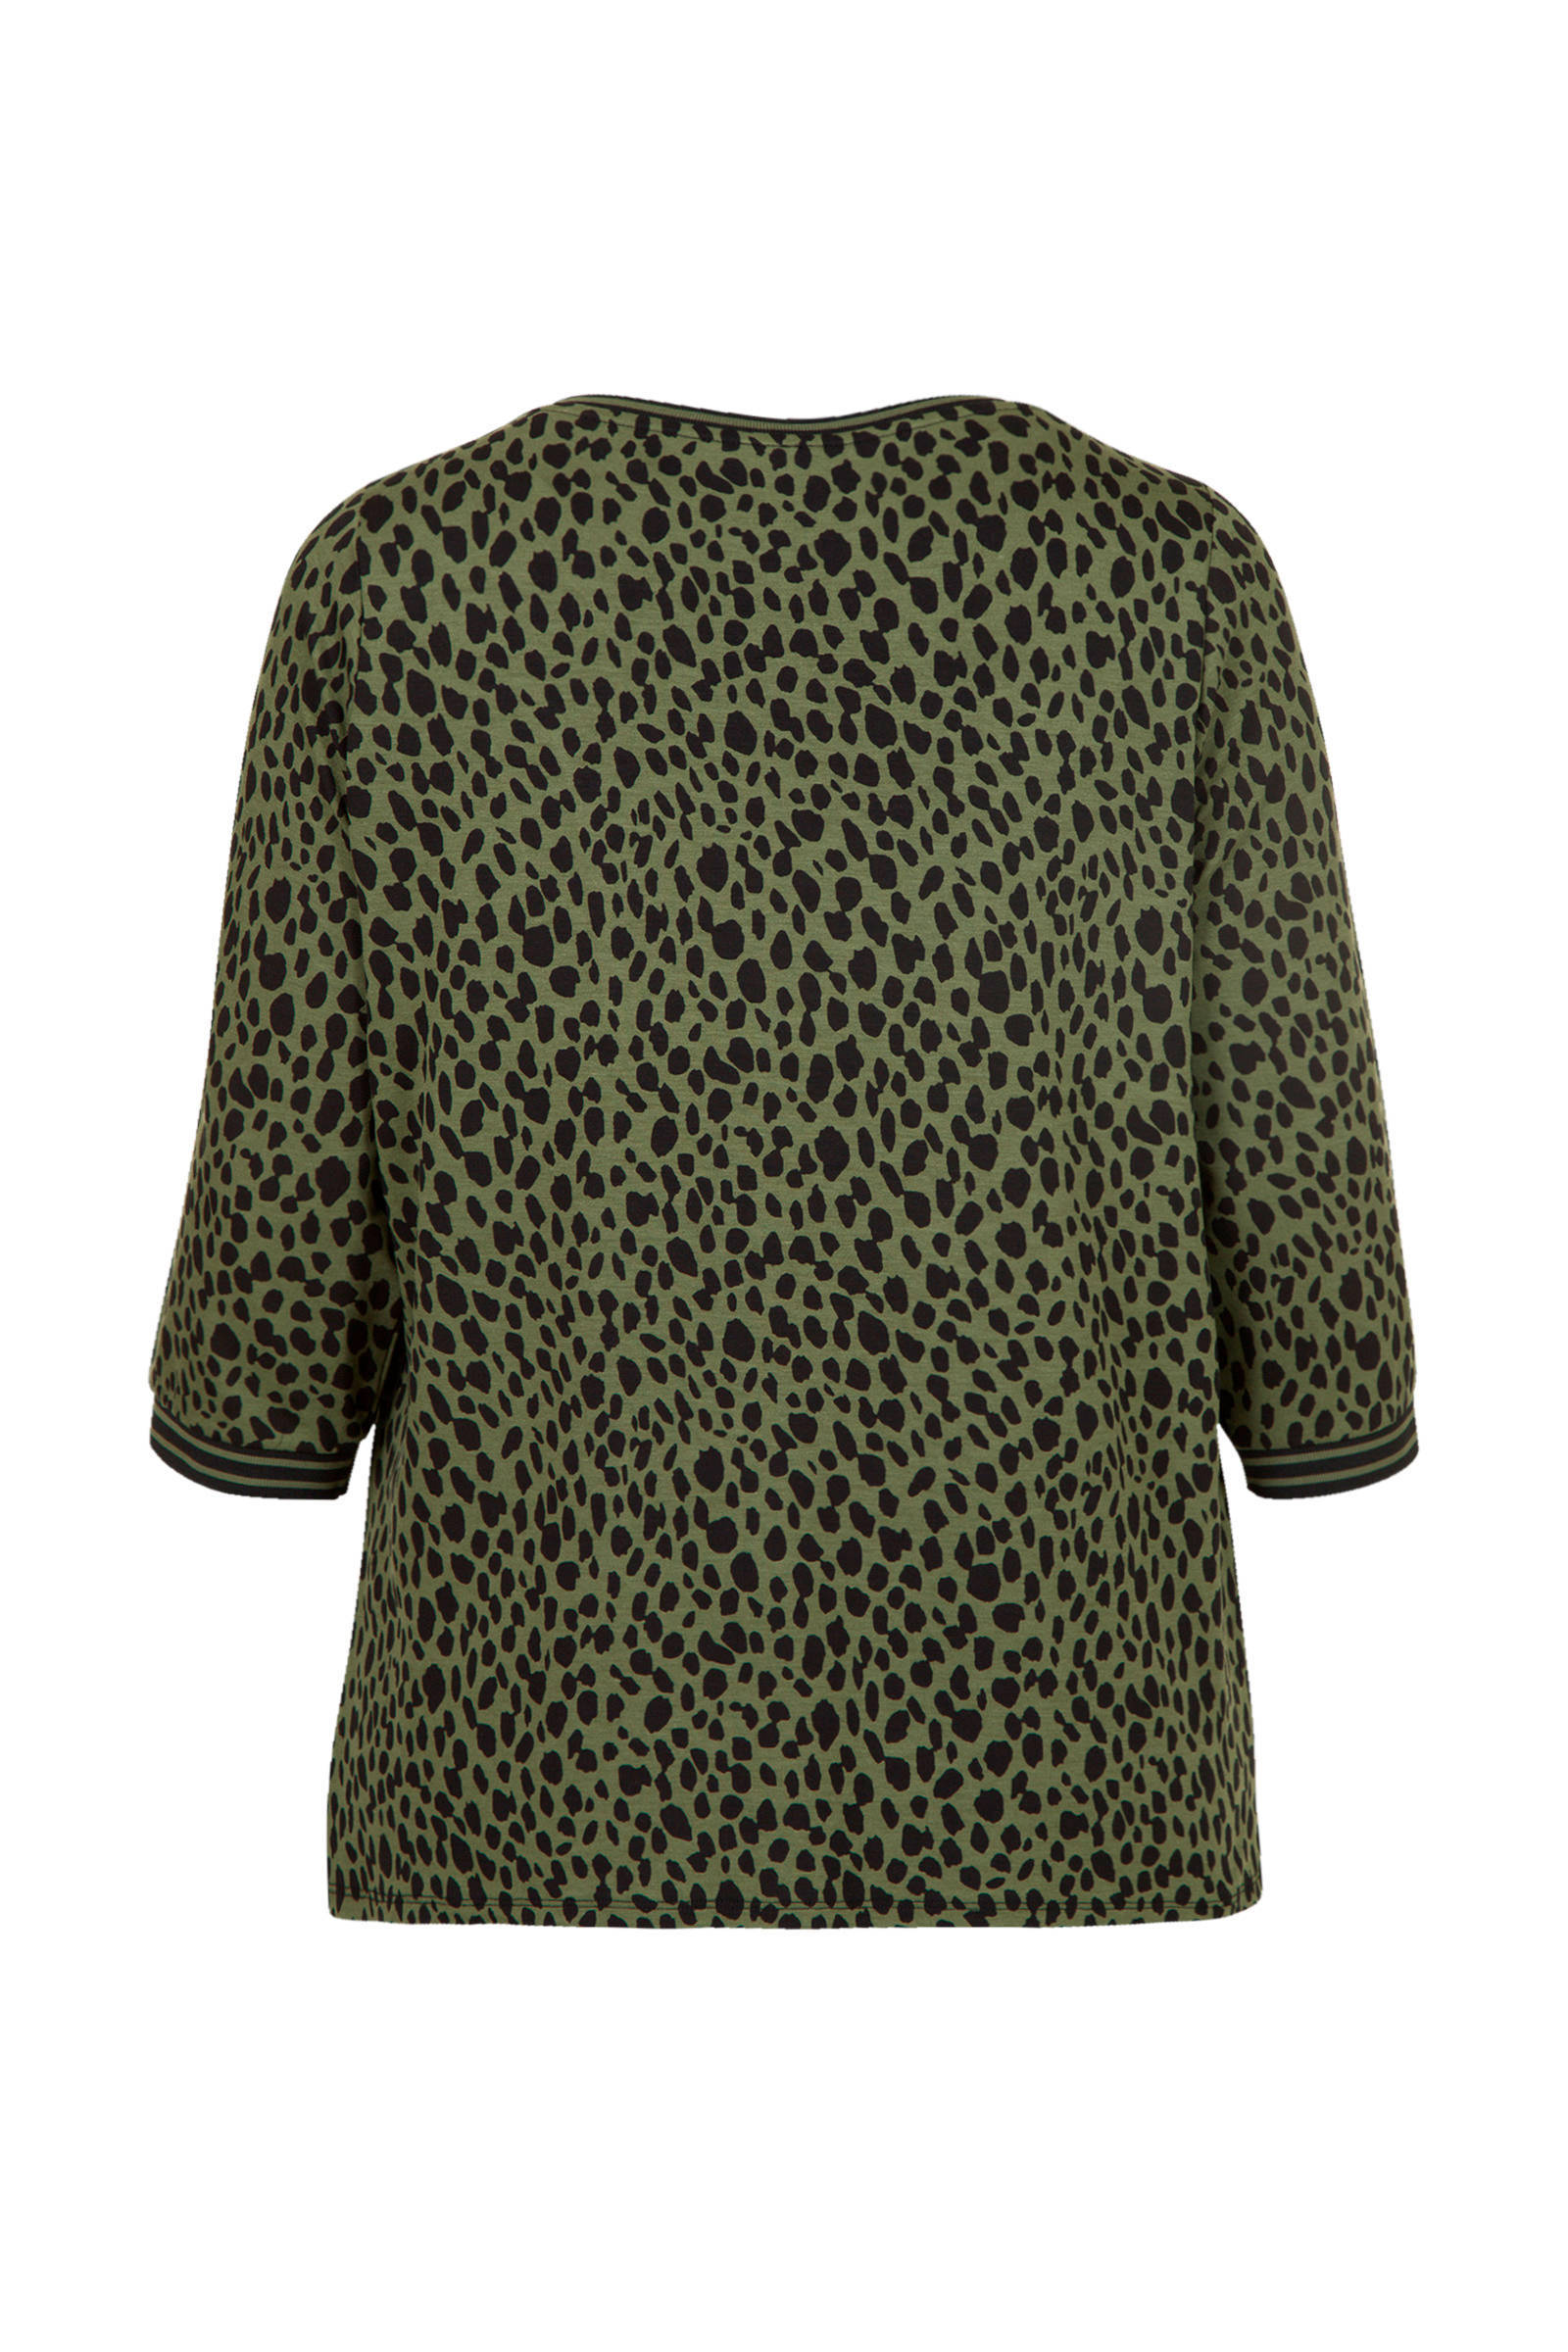 Miss Etam Plus Top Met All Over Print Groen/zwart OoIle2ve